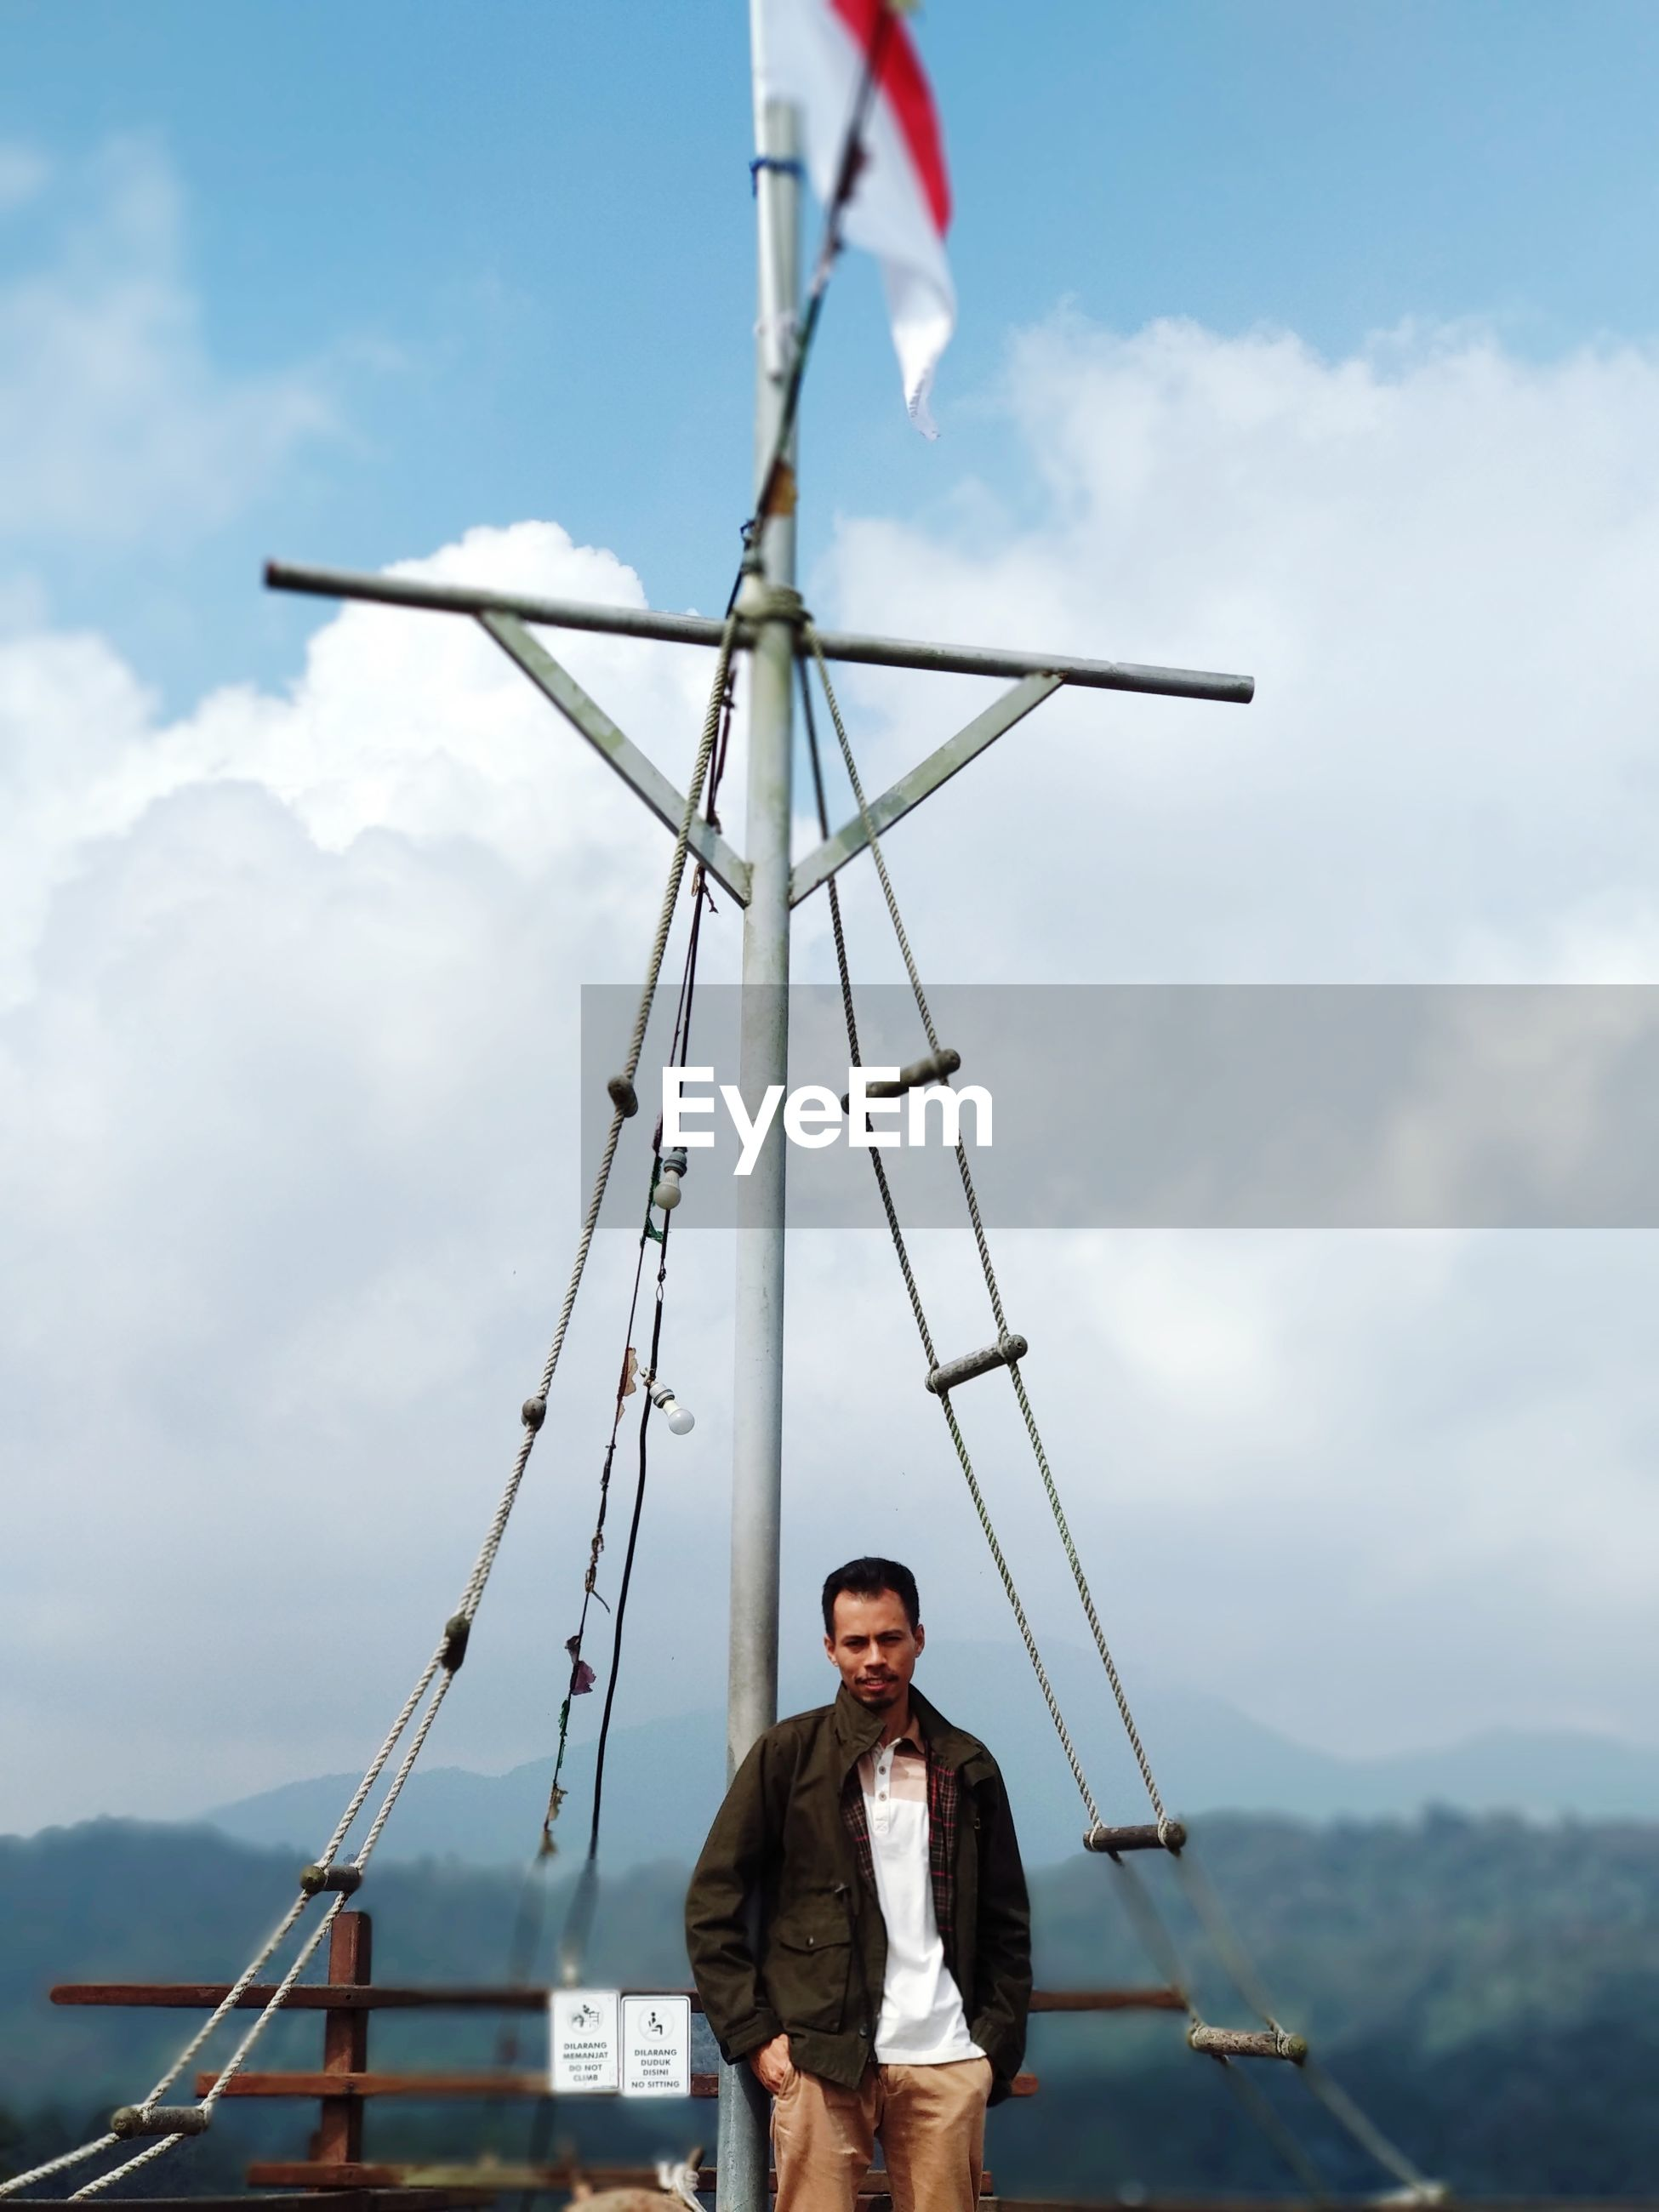 Man standing on boat against sky